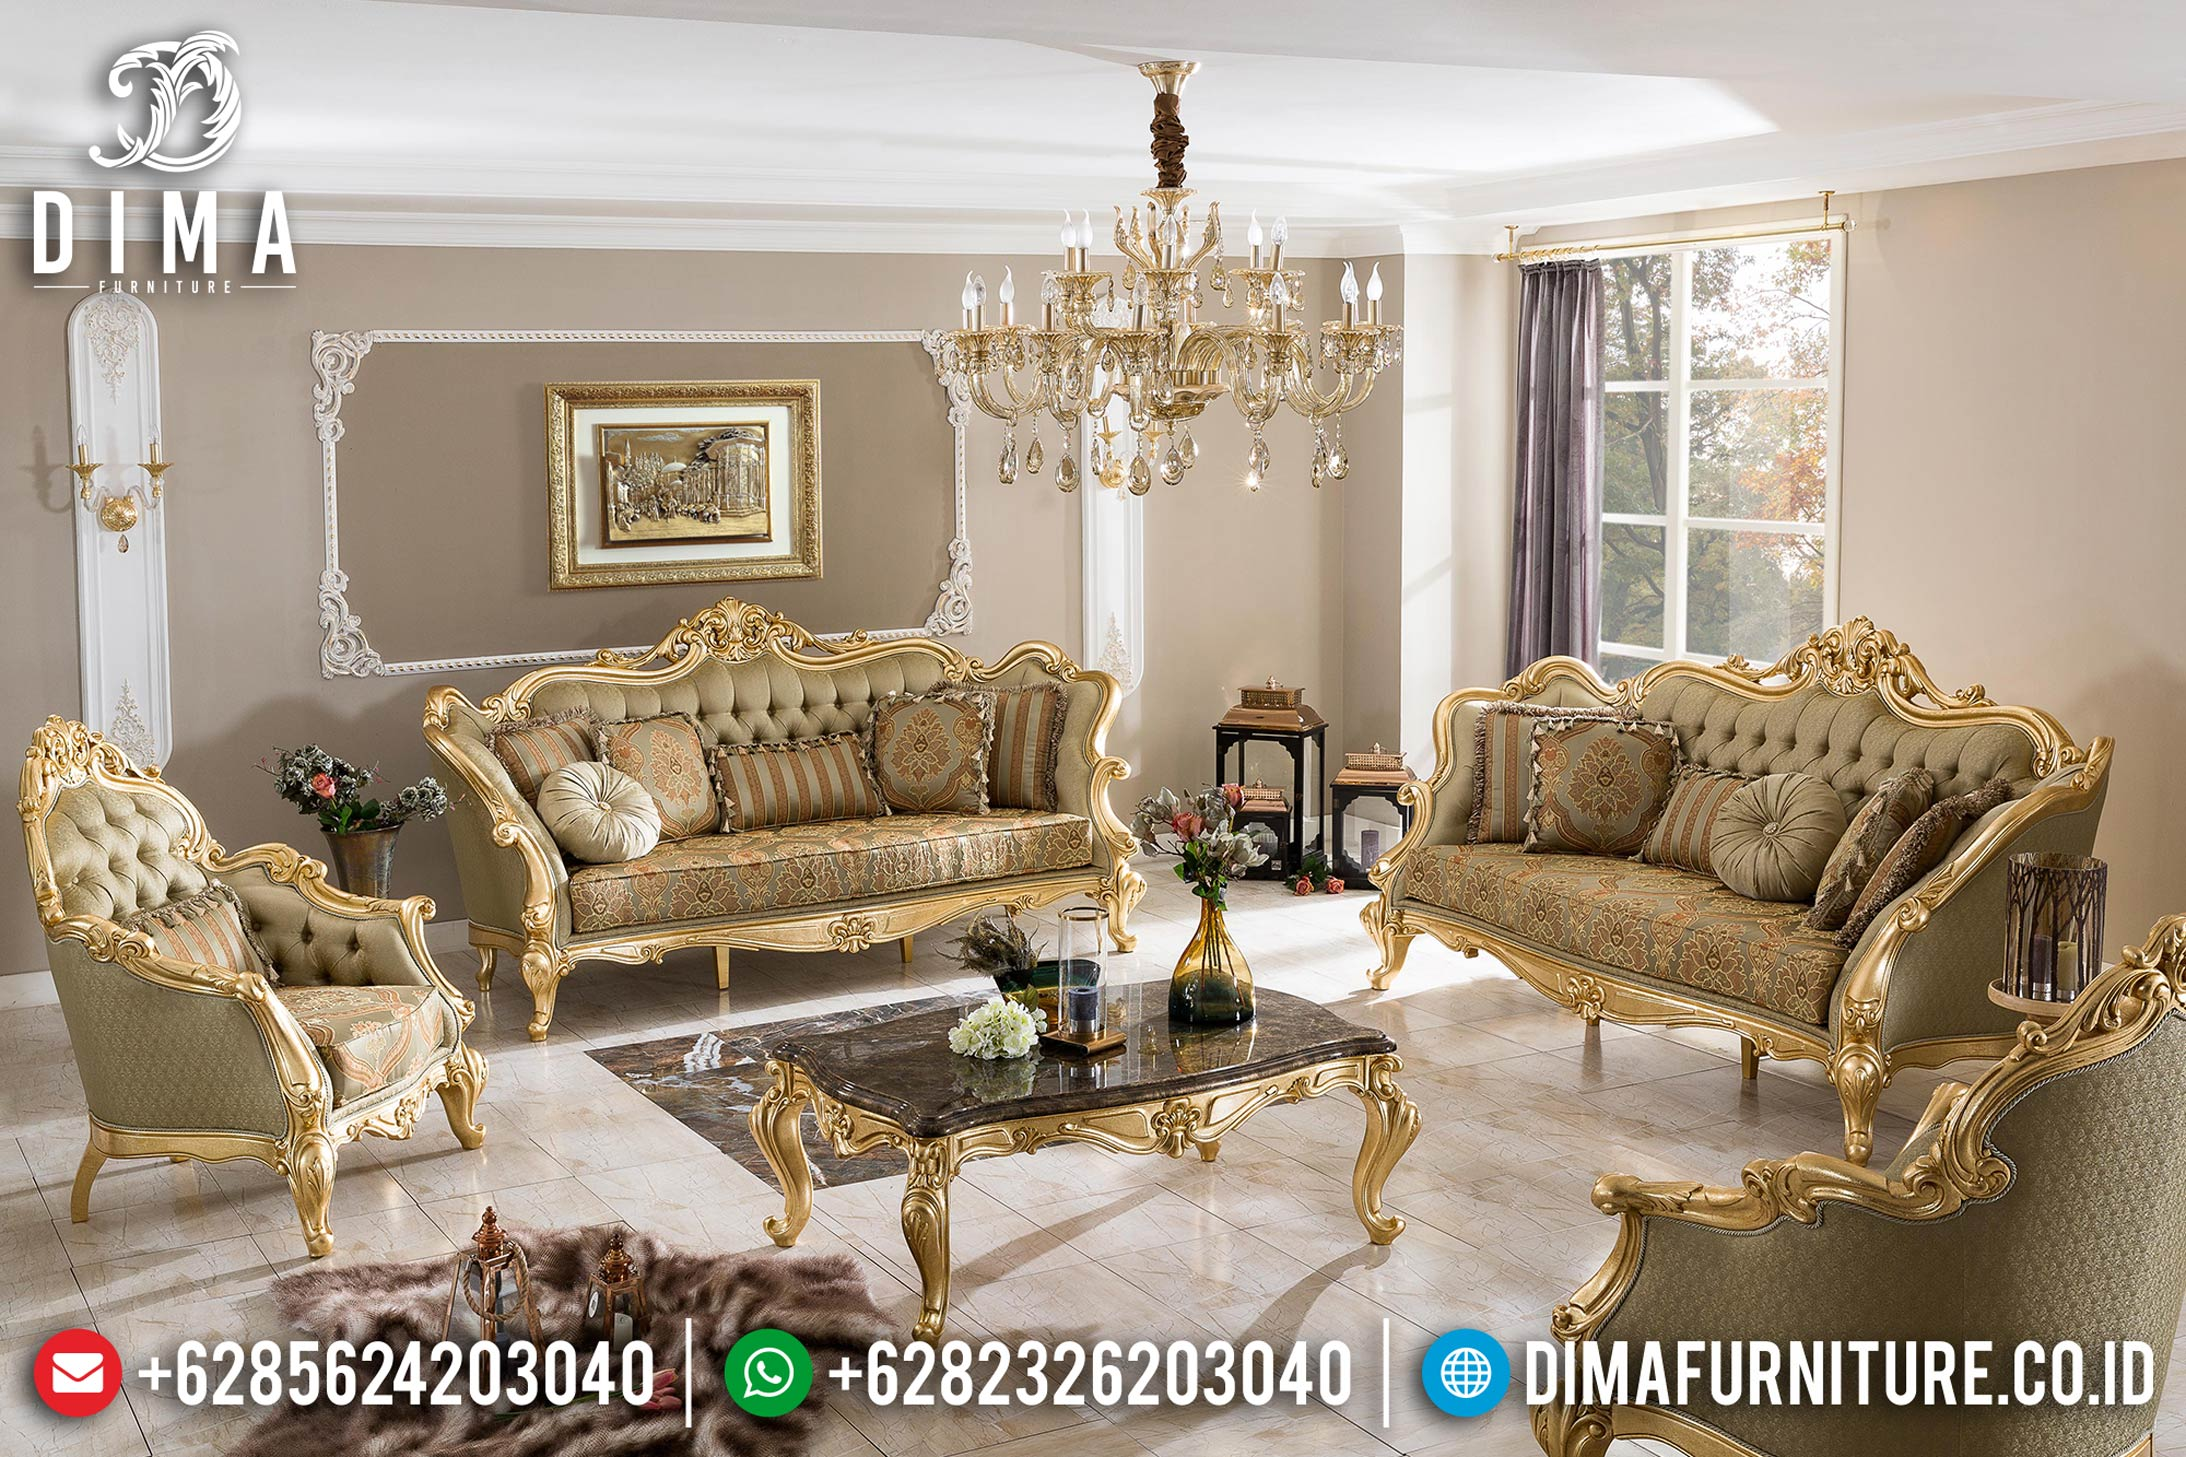 Model Sofa Tamu Jepara 2019-2020 016 Dima Furniture Jepara